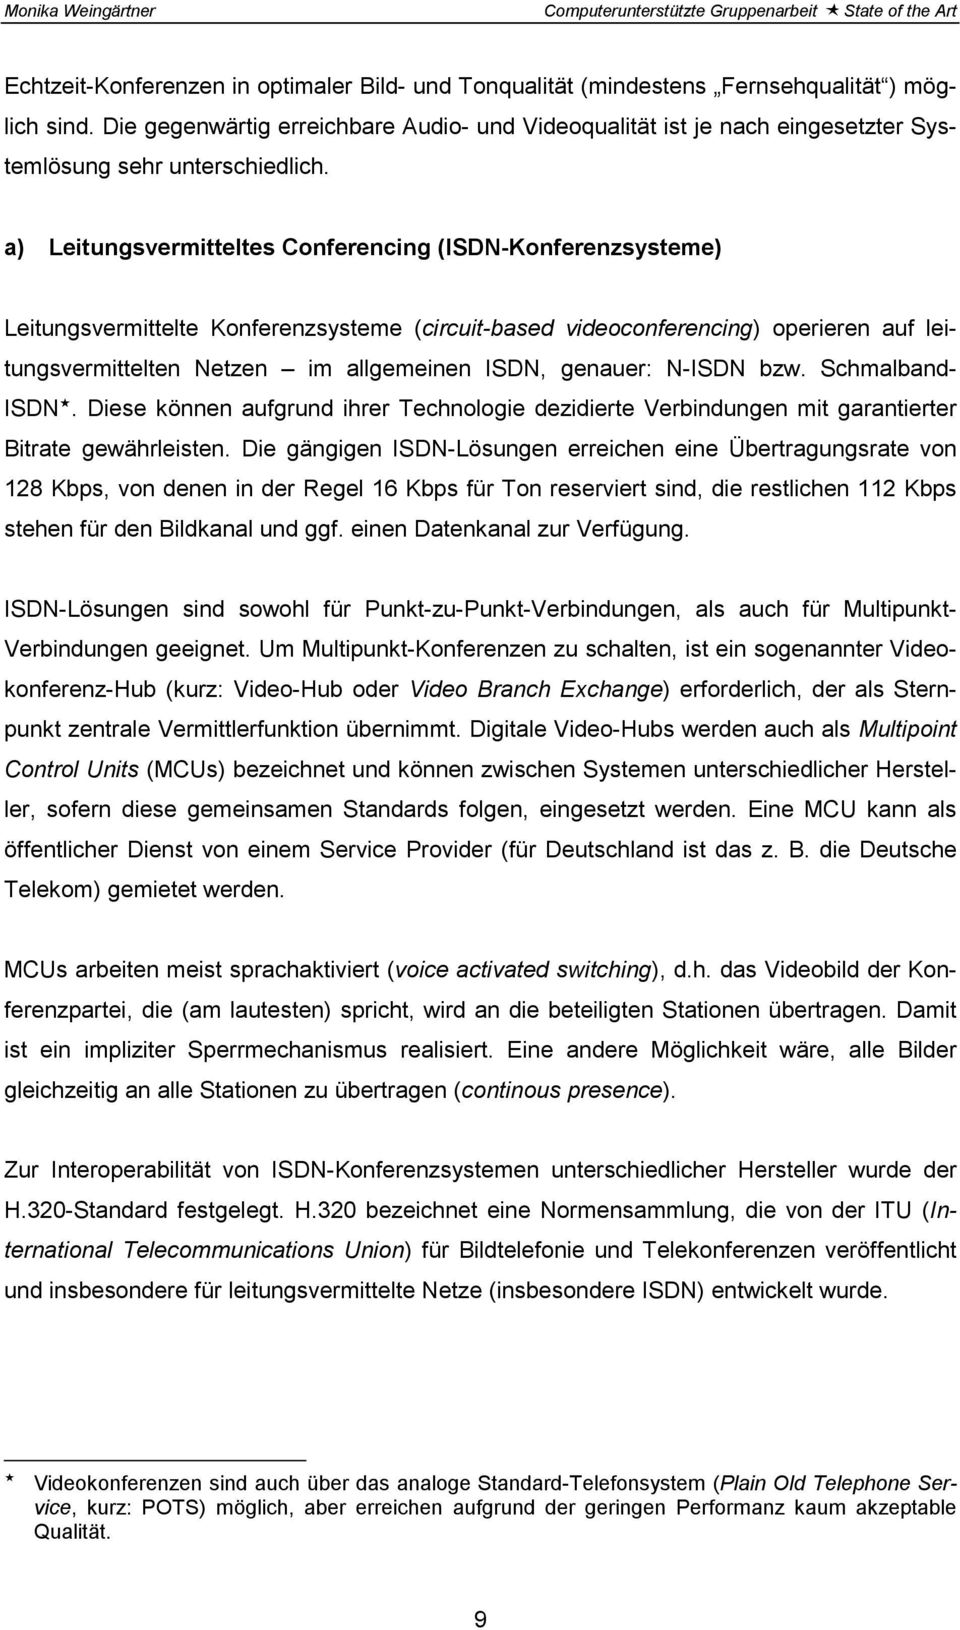 a) Leitungsvermitteltes Conferencing (ISDN-Konferenzsysteme) Leitungsvermittelte Konferenzsysteme (circuit-based videoconferencing) operieren auf leitungsvermittelten Netzen im allgemeinen ISDN,